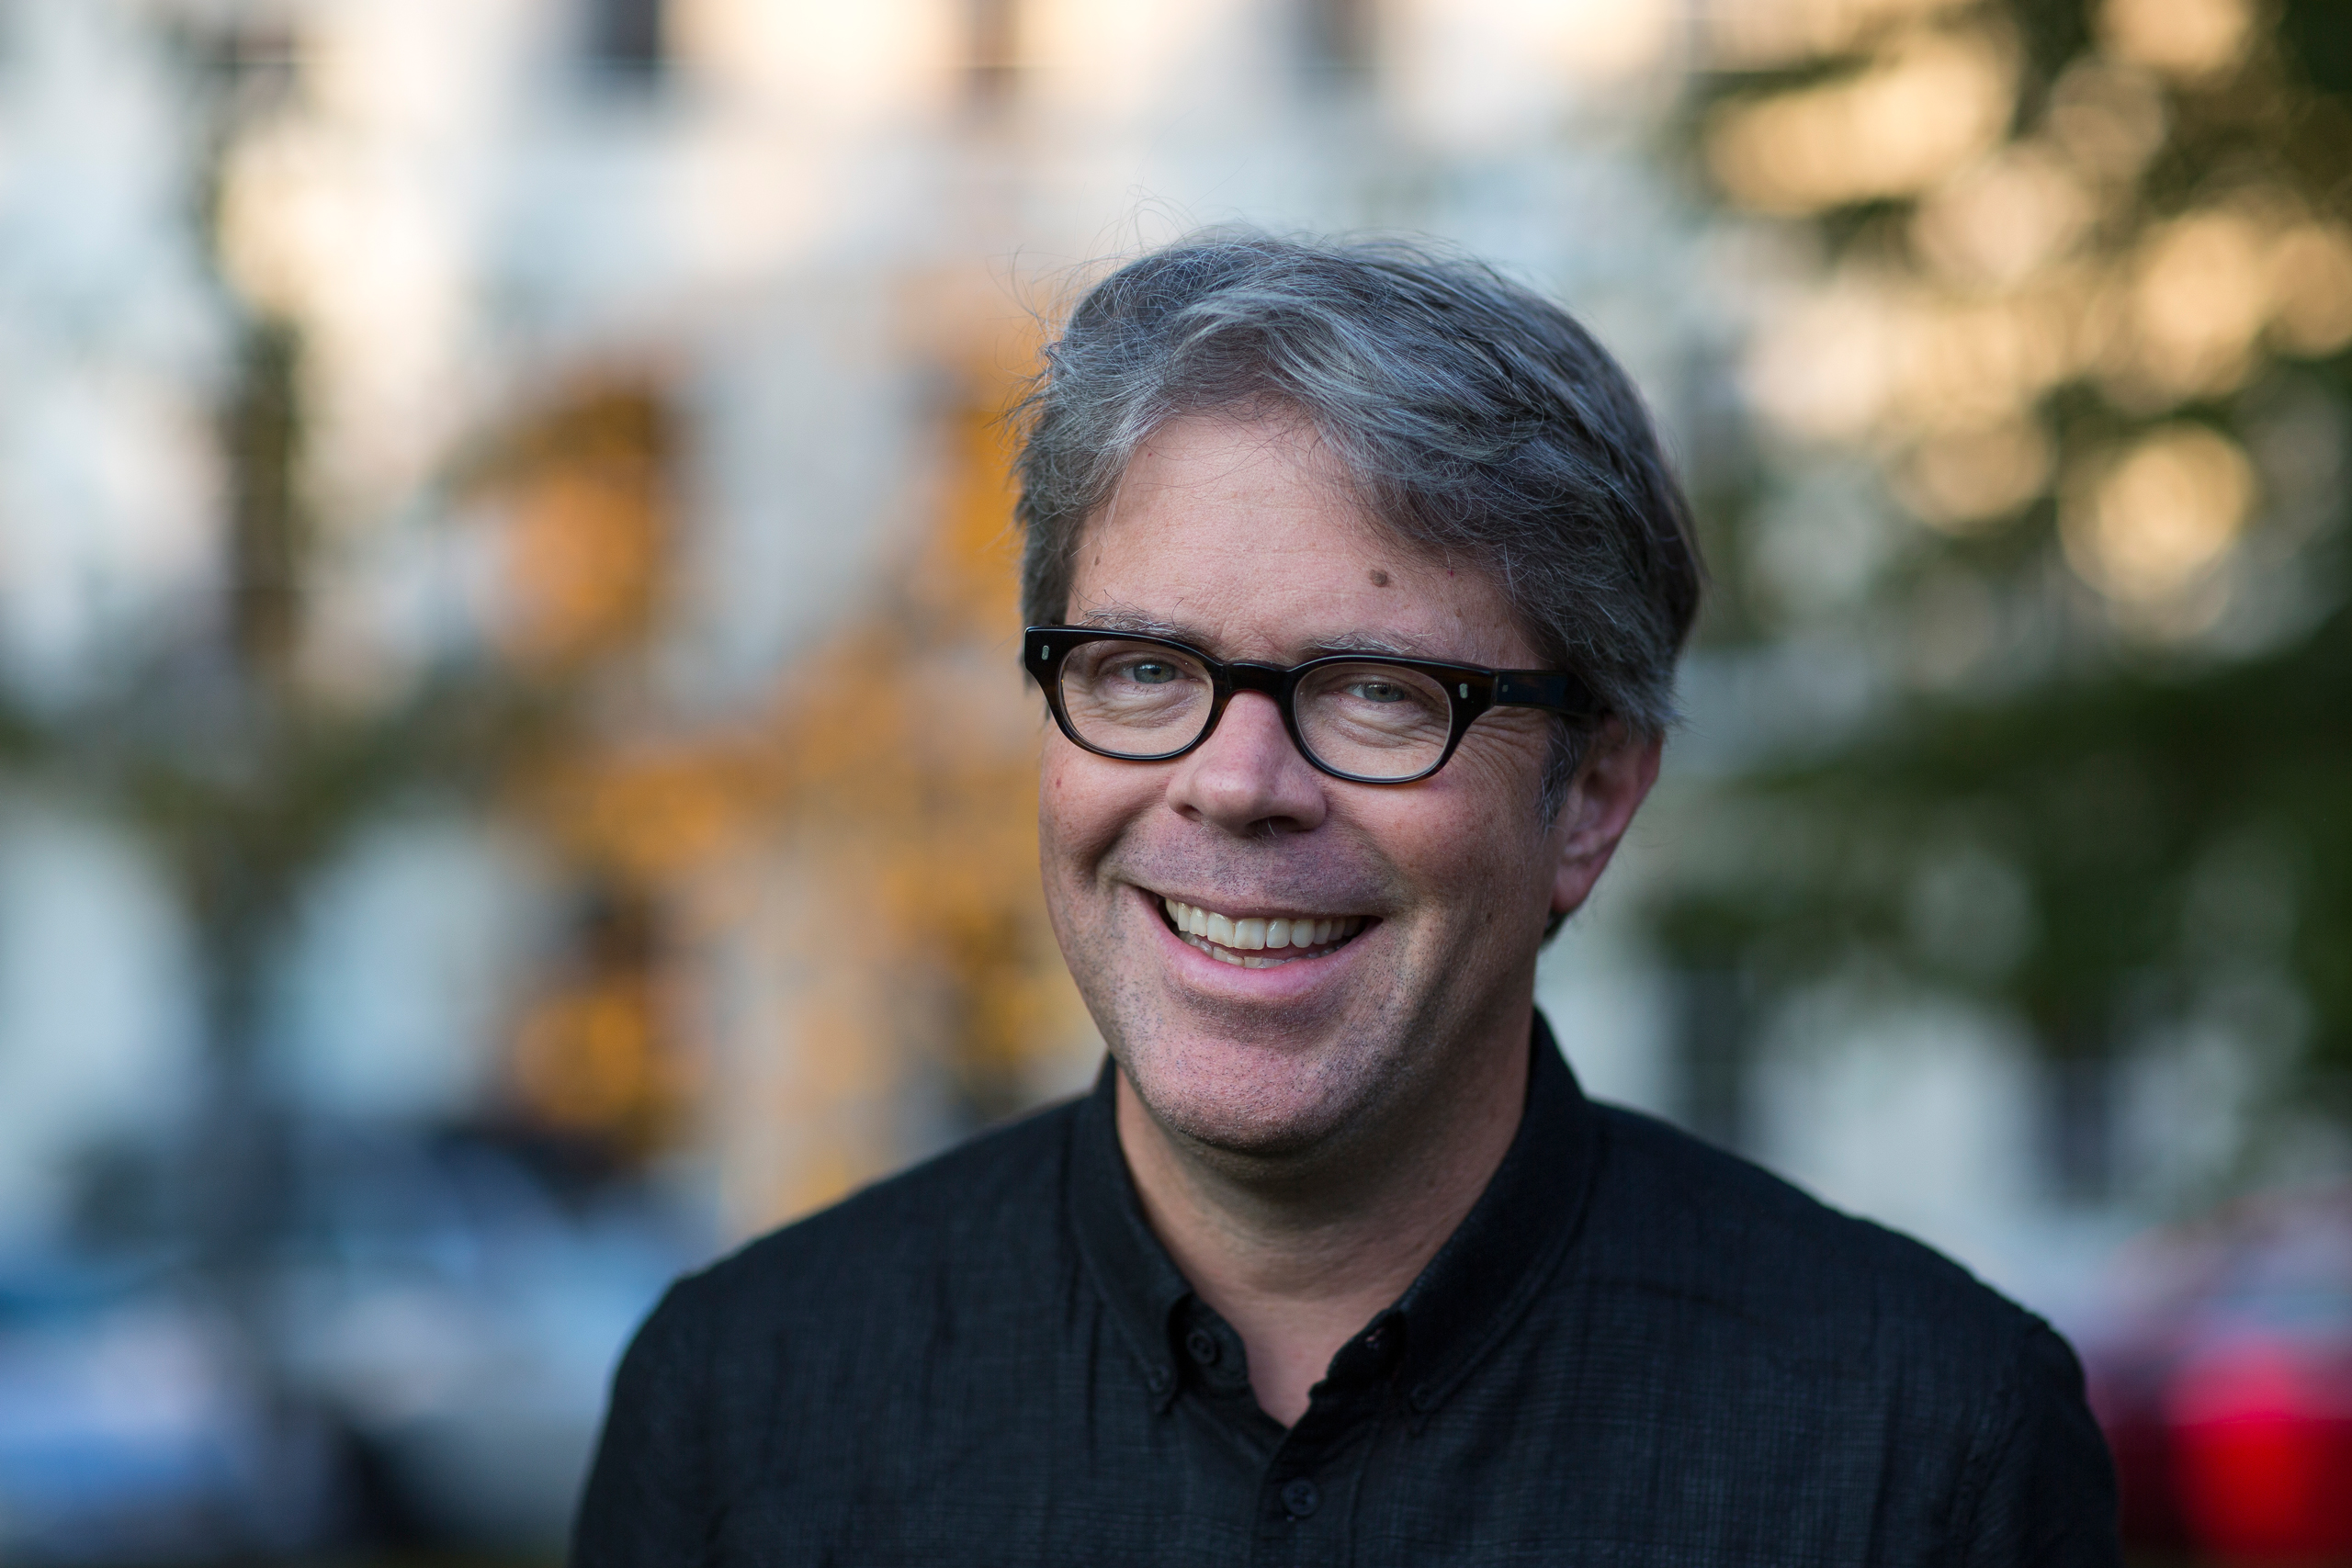 CHELTENHAM, ENGLAND - OCTOBER 02: Jonathan Franzen, bestselling American author of Freedom and The Corrections, at the Cheltenham Literature Festival on October 2, 2015 in Cheltenham, England. (Photo by David Levenson/Getty Images)